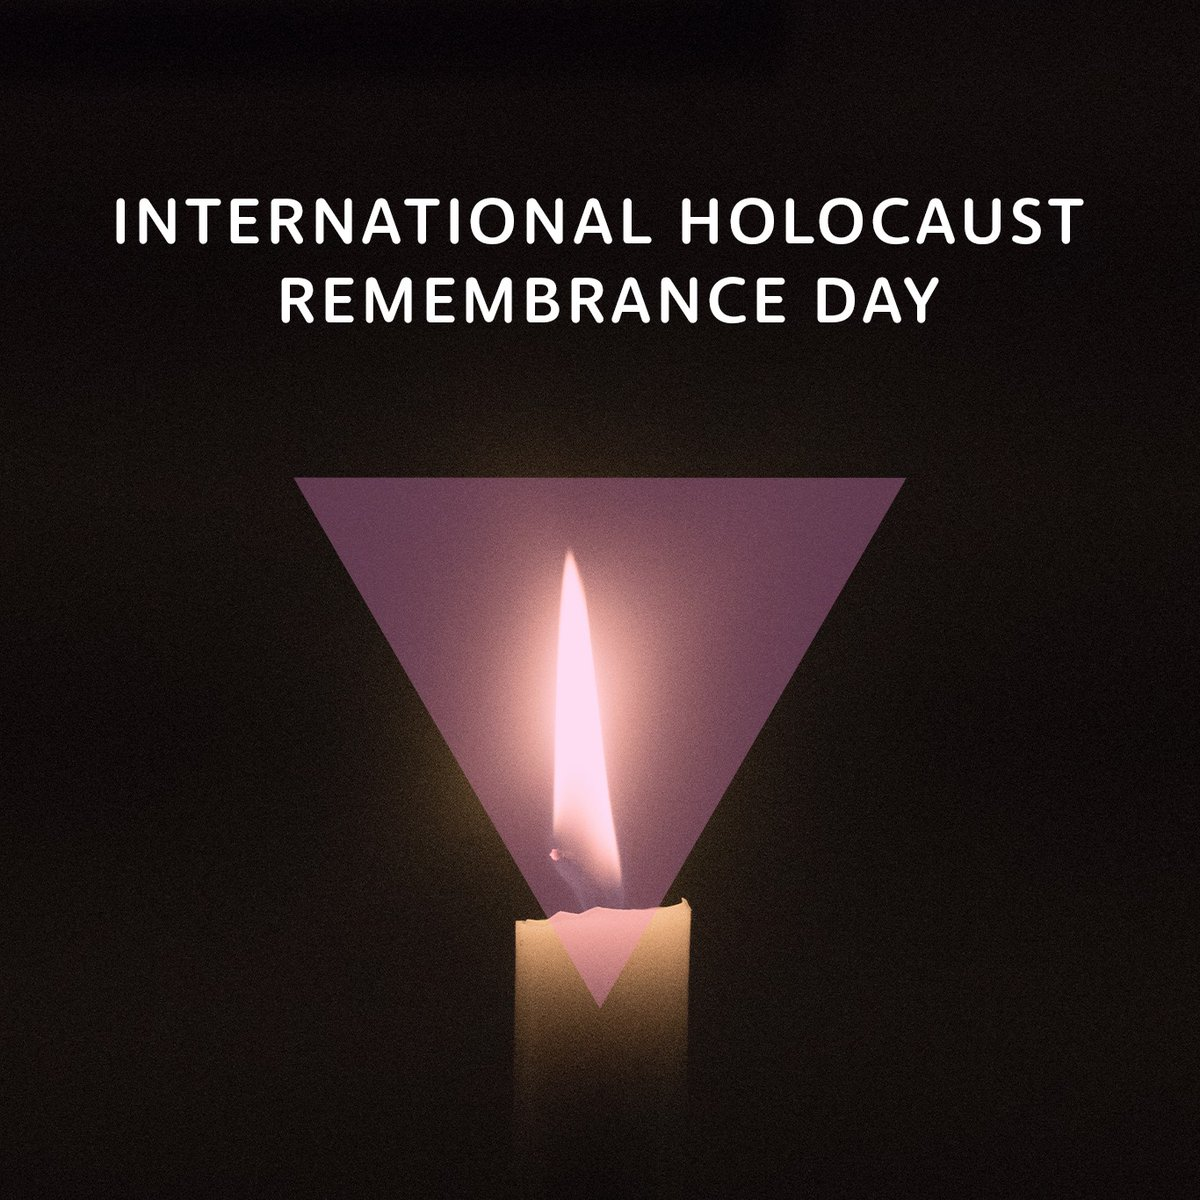 Today is #InternationalHolocaustRemembranceDay and marks the 76th anniversary of the liberation of the Nazi German concentration and extermination camp Auschwitz-Birkenau. #WeRemember the millions of lives taken because of hate.